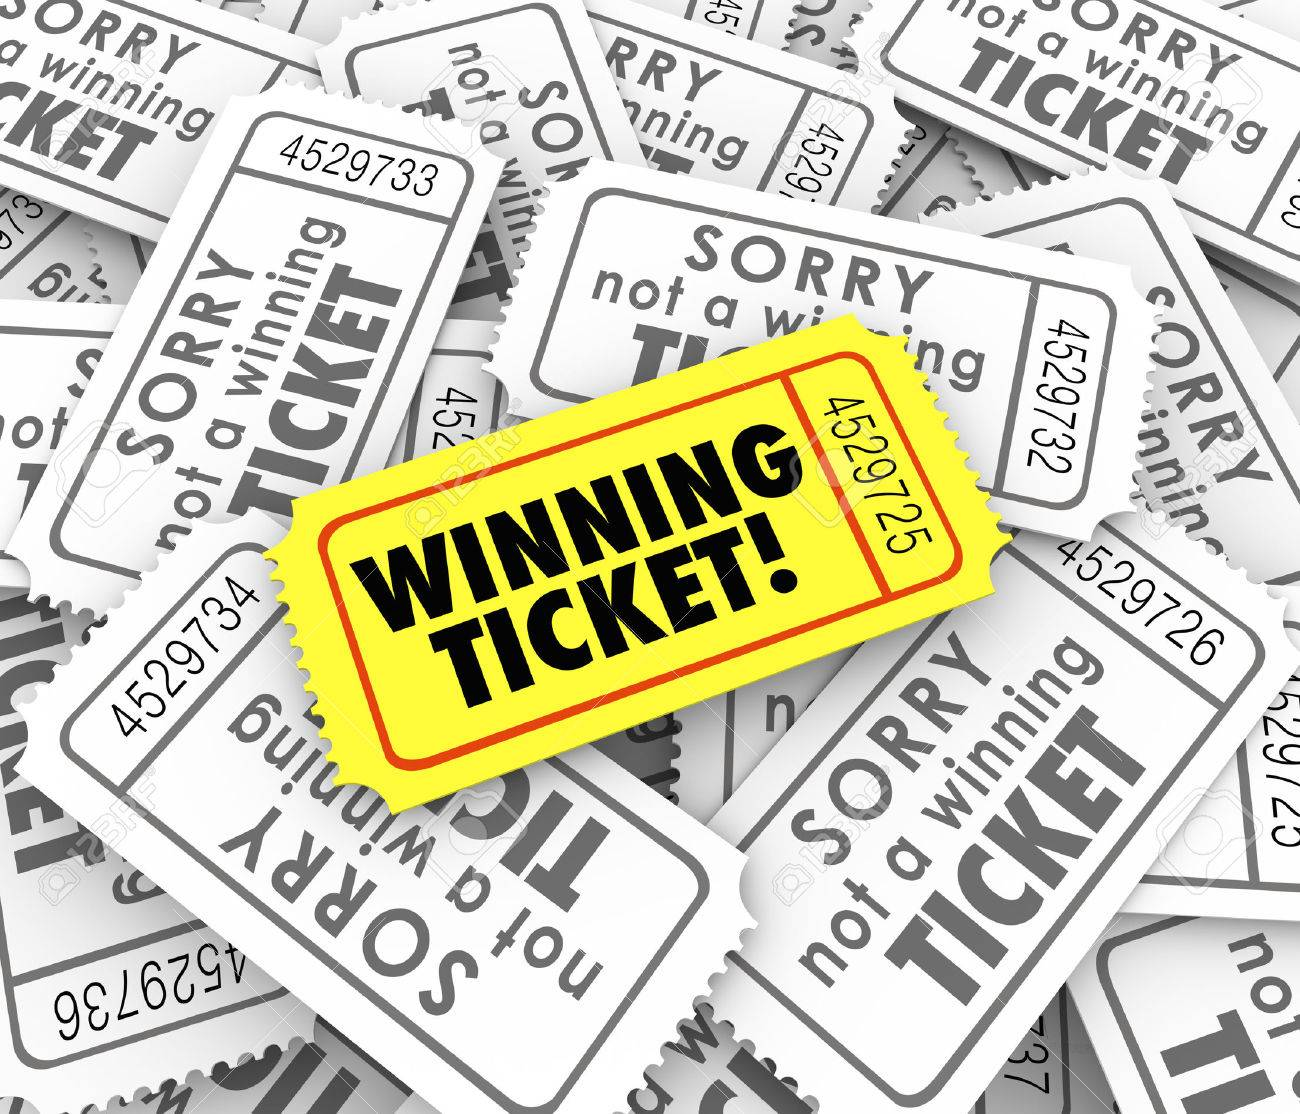 One winning ticket on pile of losing entries in lottery or raffle